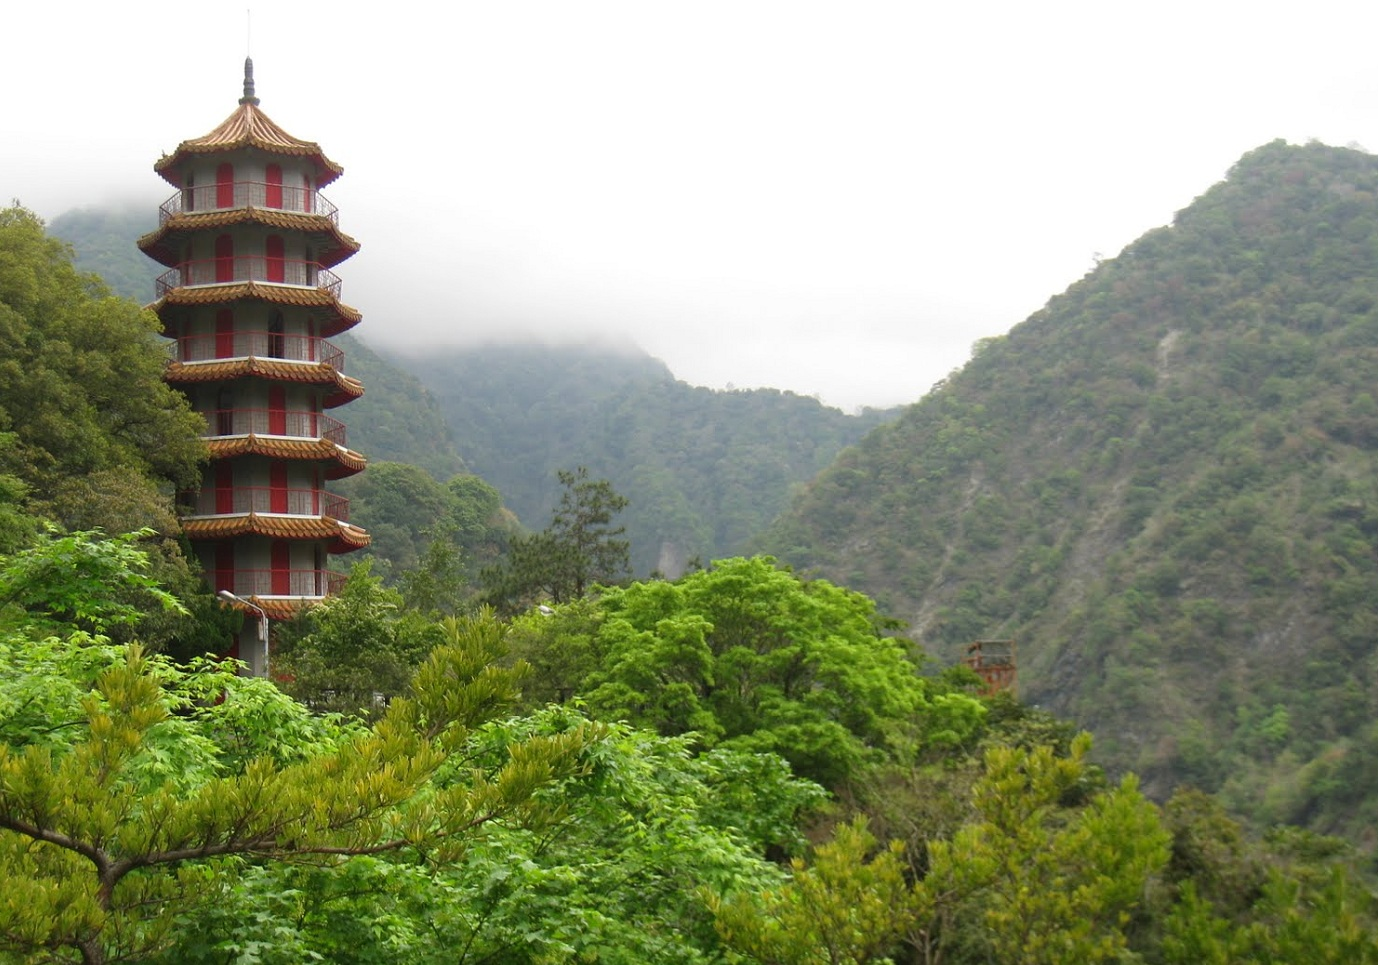 Taiwan additionally Hehuanshan furthermore Bali Cray Alila Villas Uluwatu Bali also File Confucius temple Kaohsiung amk additionally File Dai Jin Landscape. on taipei location